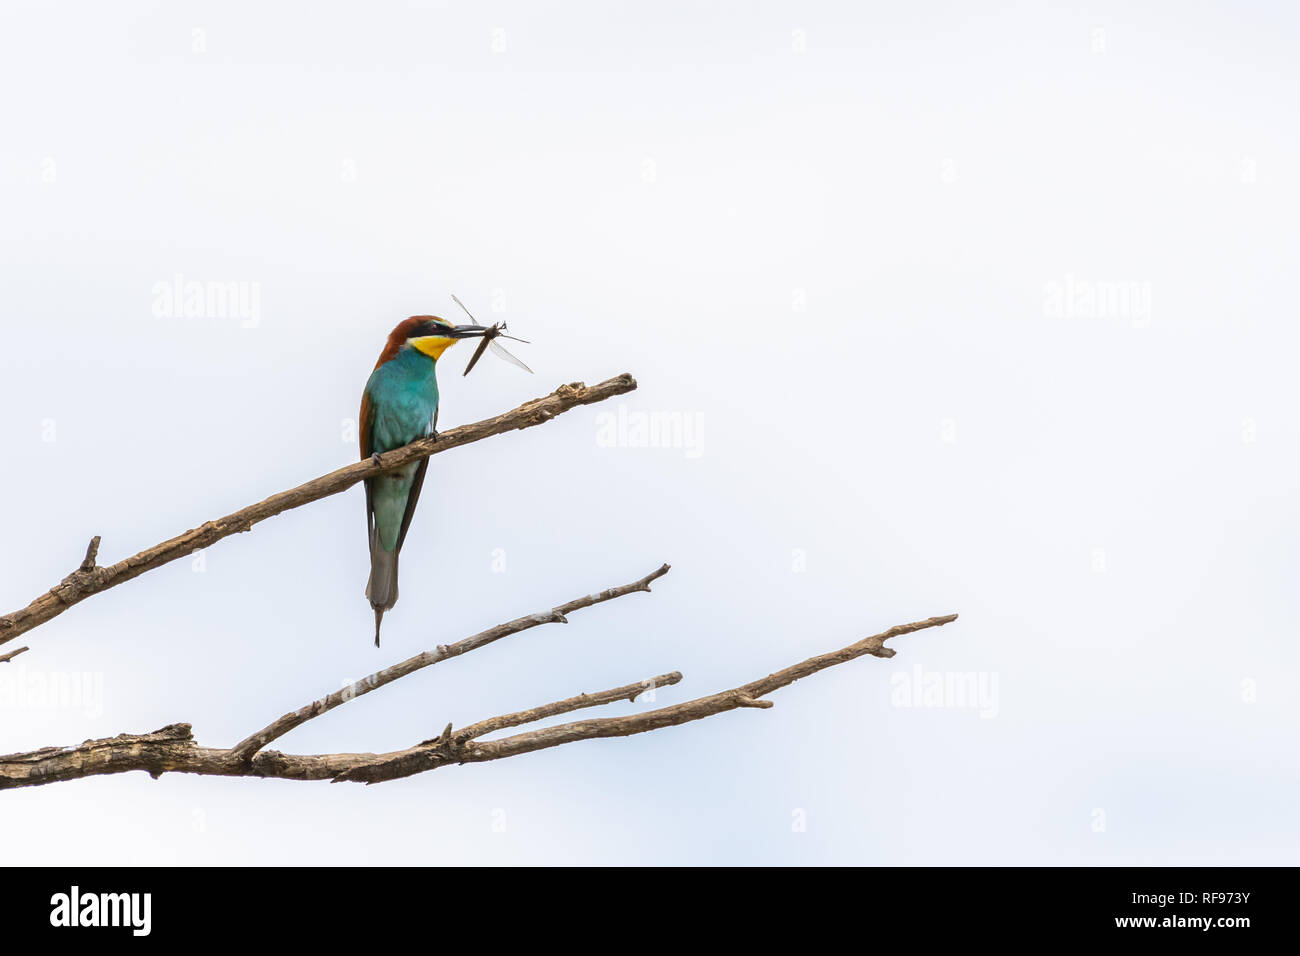 A European bee-eater (Merops apiaster) resting on a tree, dragonfly in beak, Austria Stock Photo